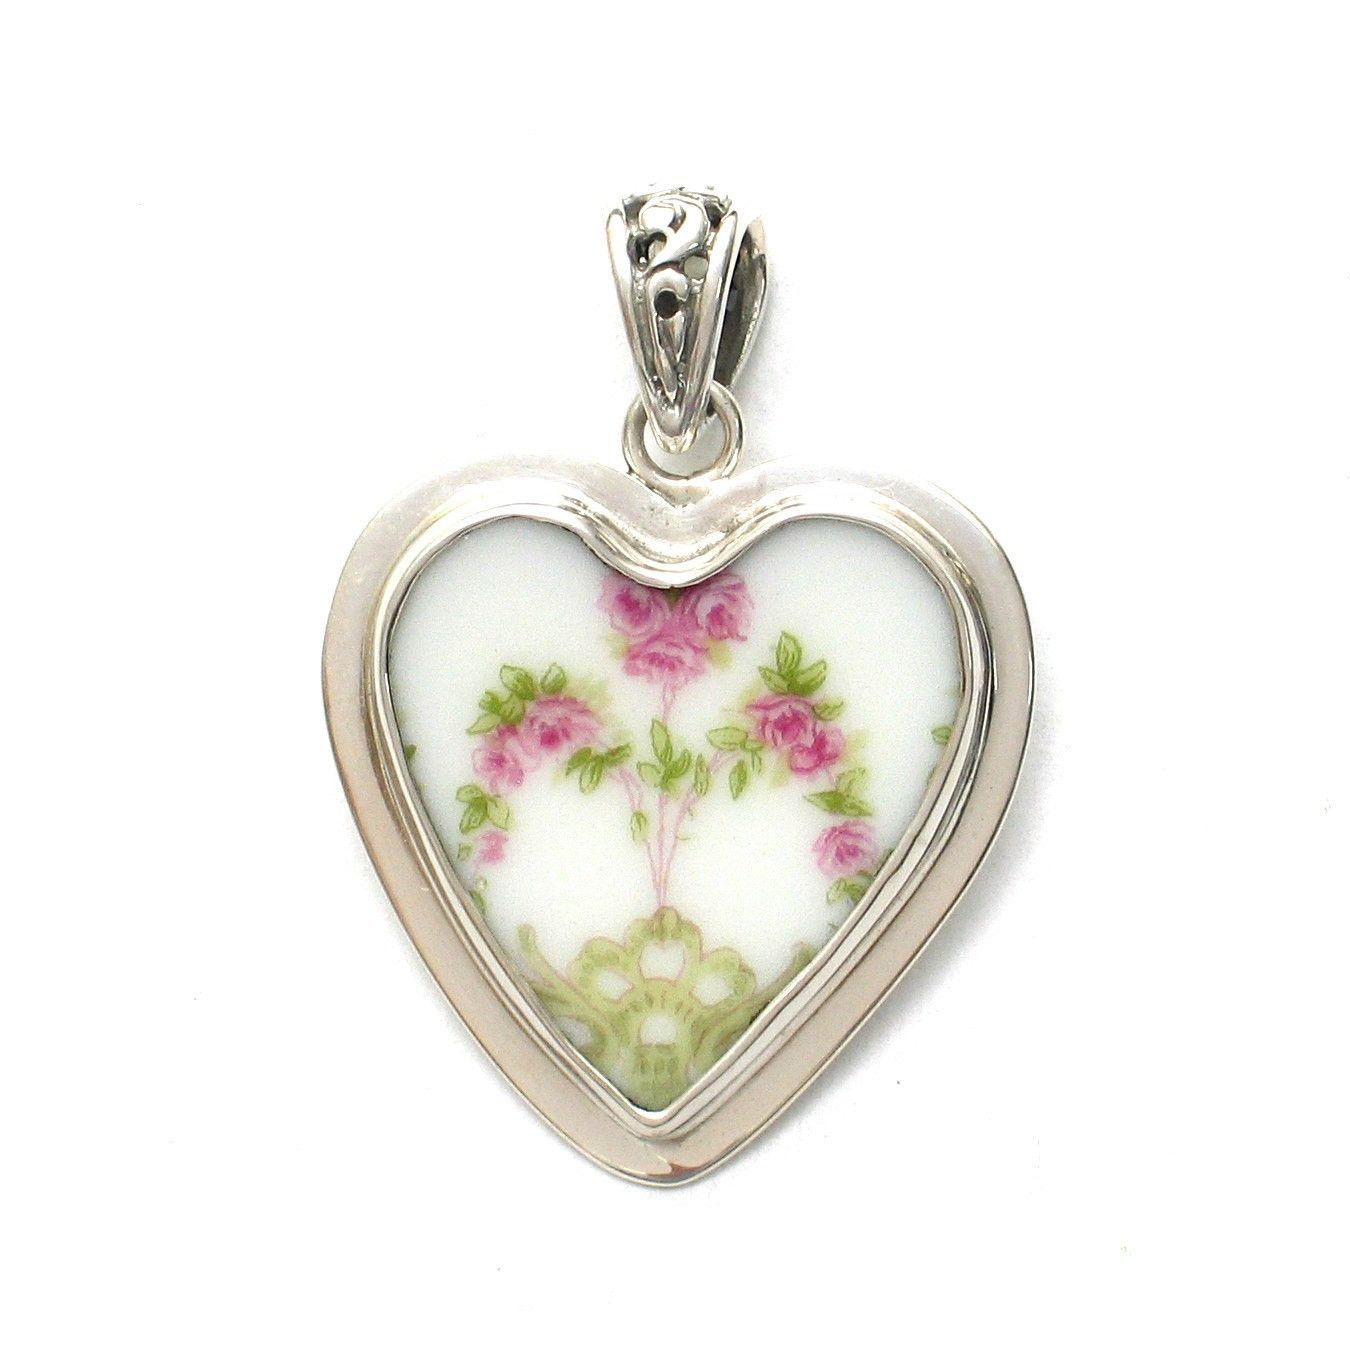 Broken China Jewelry Pink Rose Garland Stelring Heart Pendant